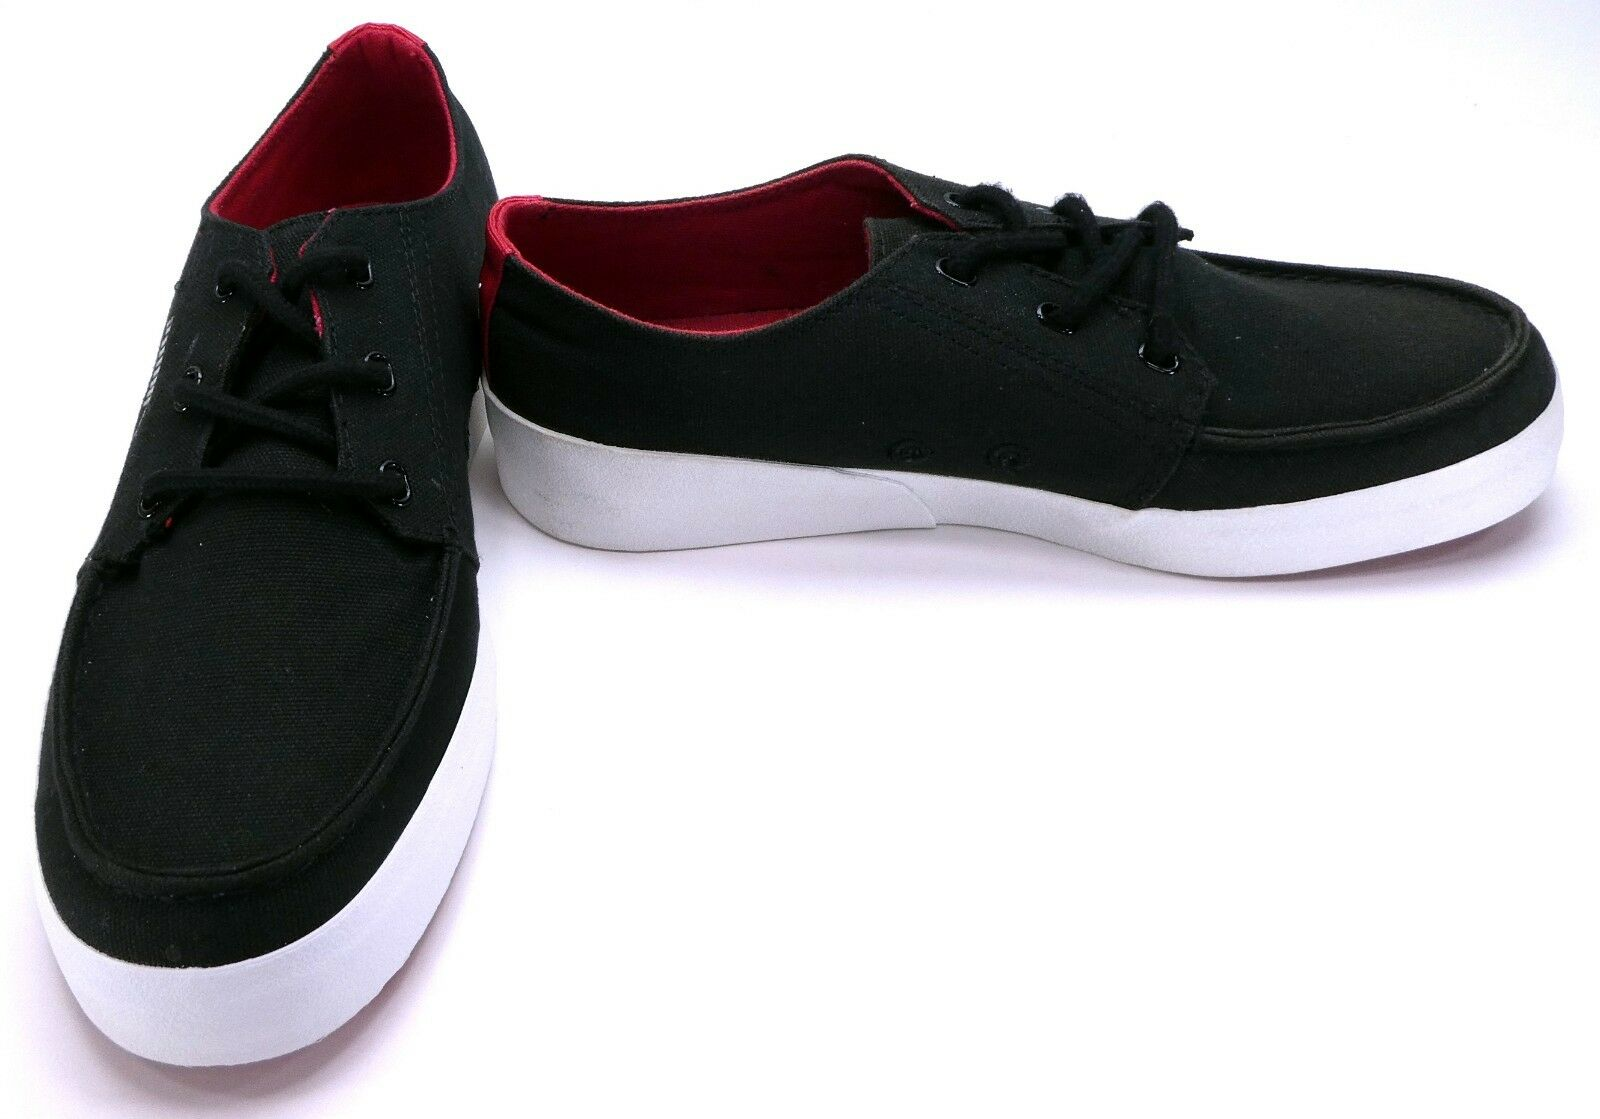 Puma shoes Canvas Lo Hawthorne Xelo Black Red Sneakers Size 9